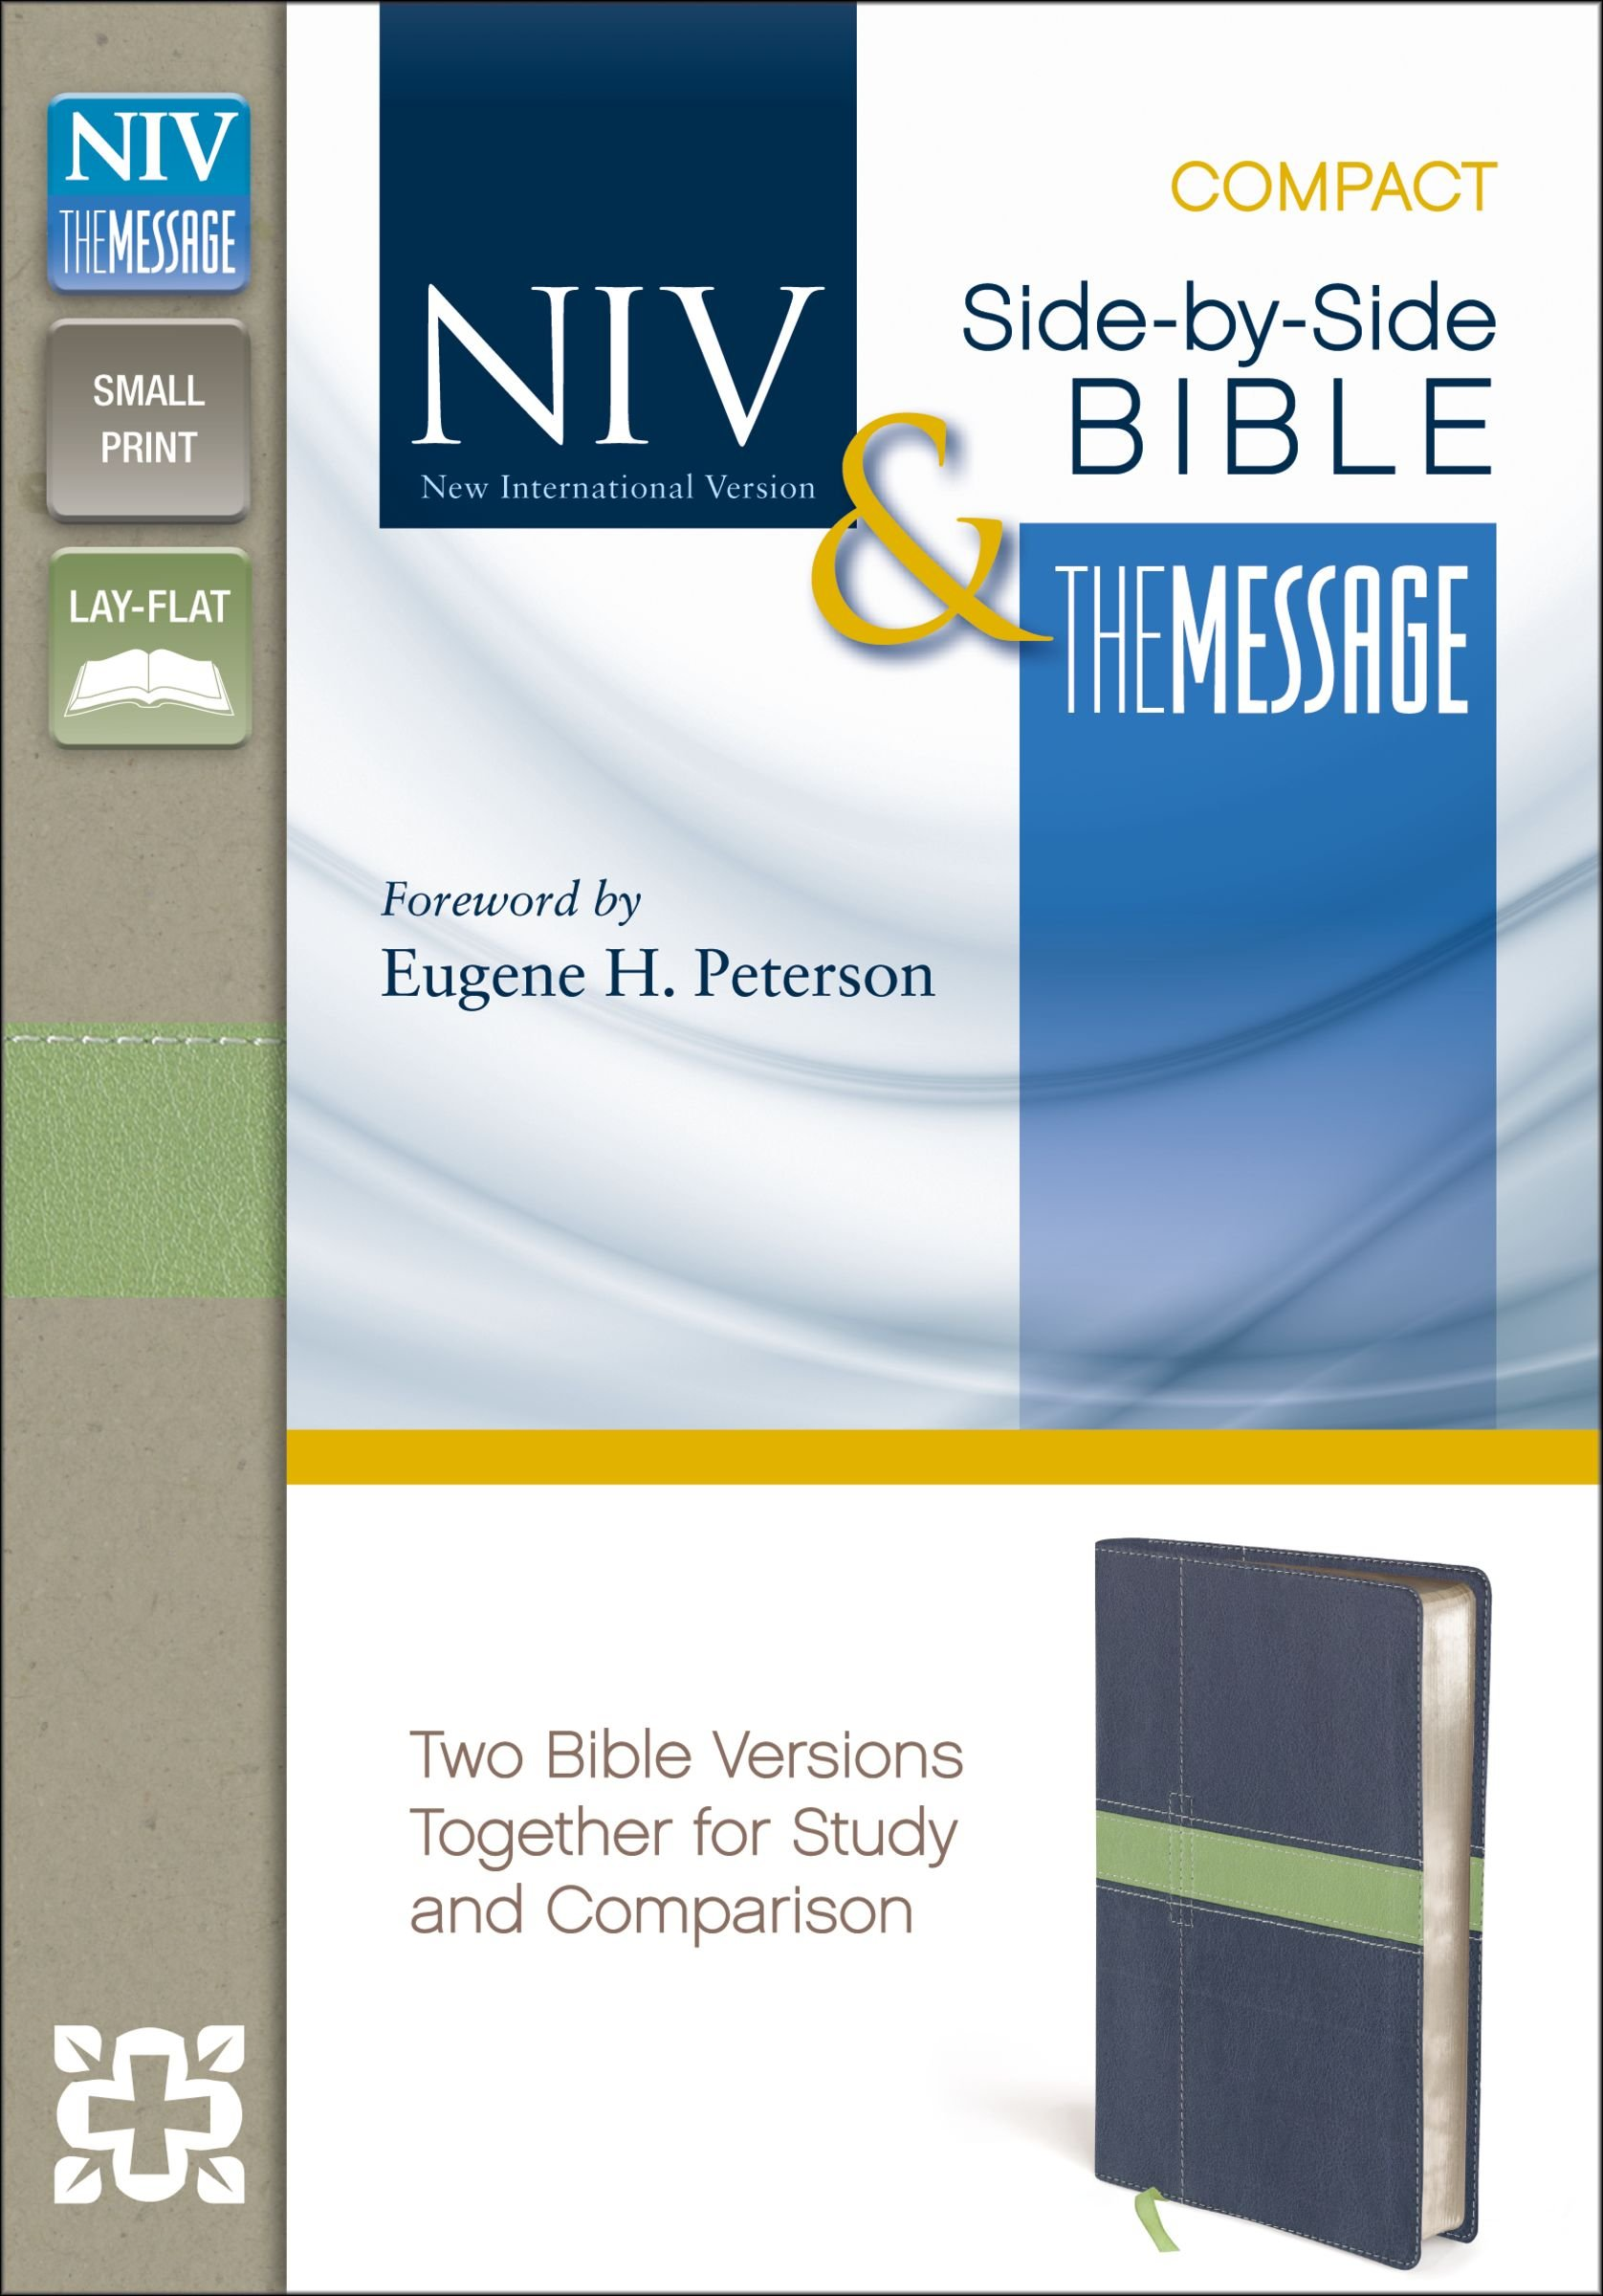 NIV, The Message, Side-by-Side Bible, Compact, Imitation Leather